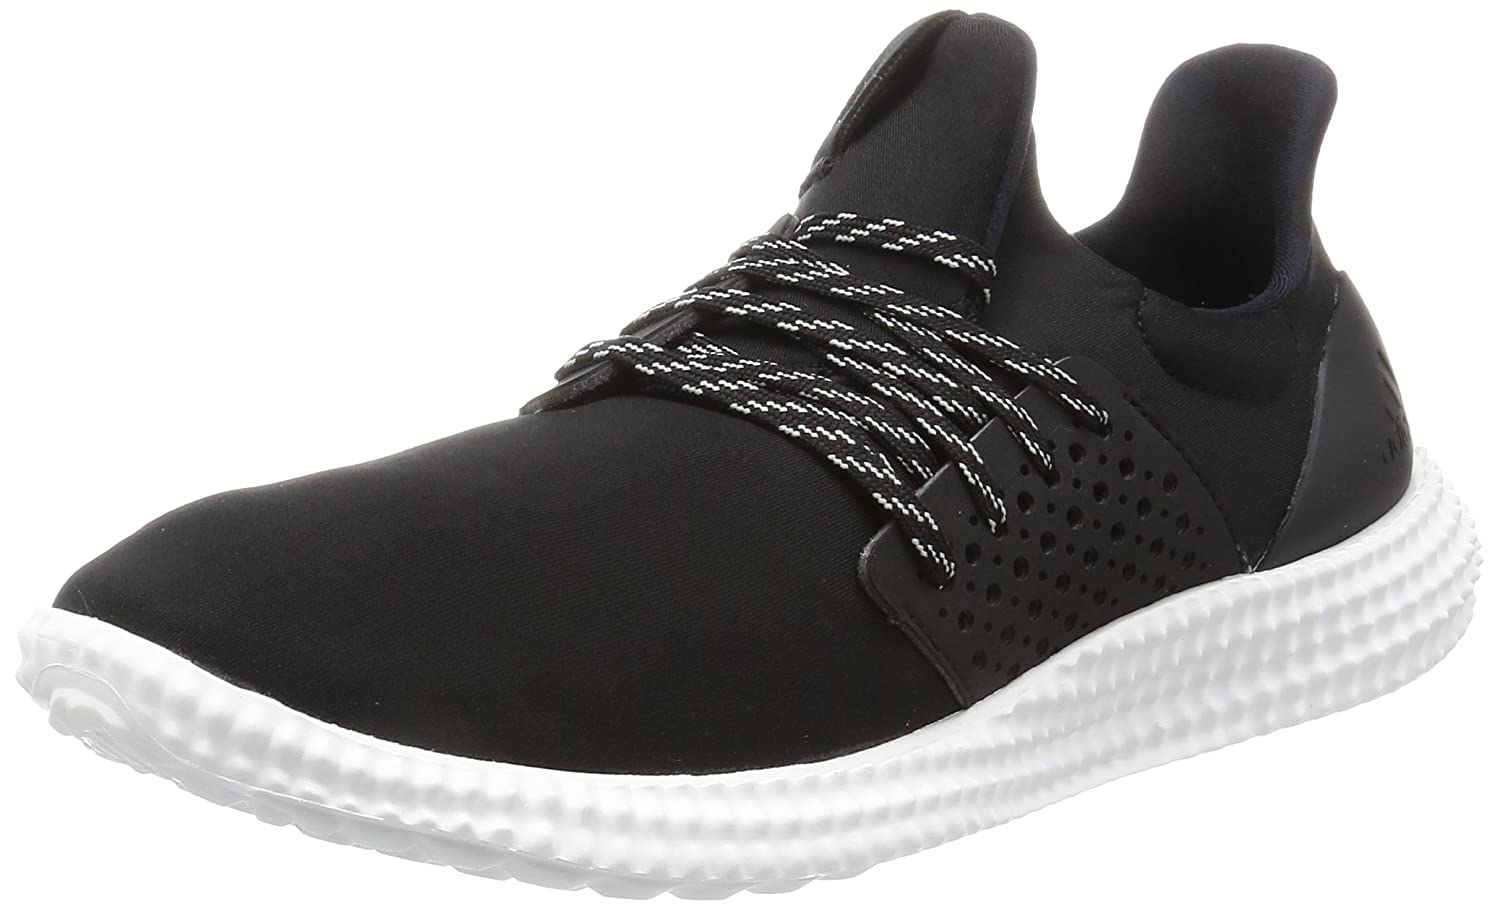 Adidas Damen Athletics Athletics Athletics 24 7 W Fitnessschuhe 688fae